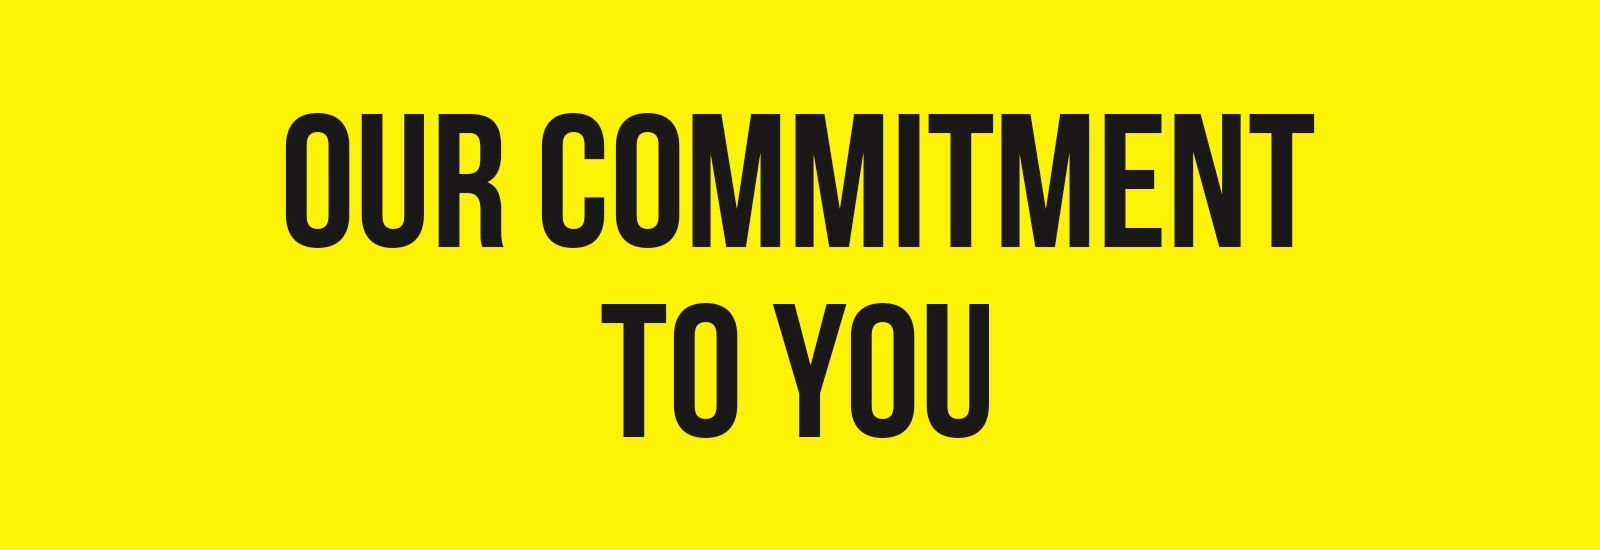 Our Commitment To You